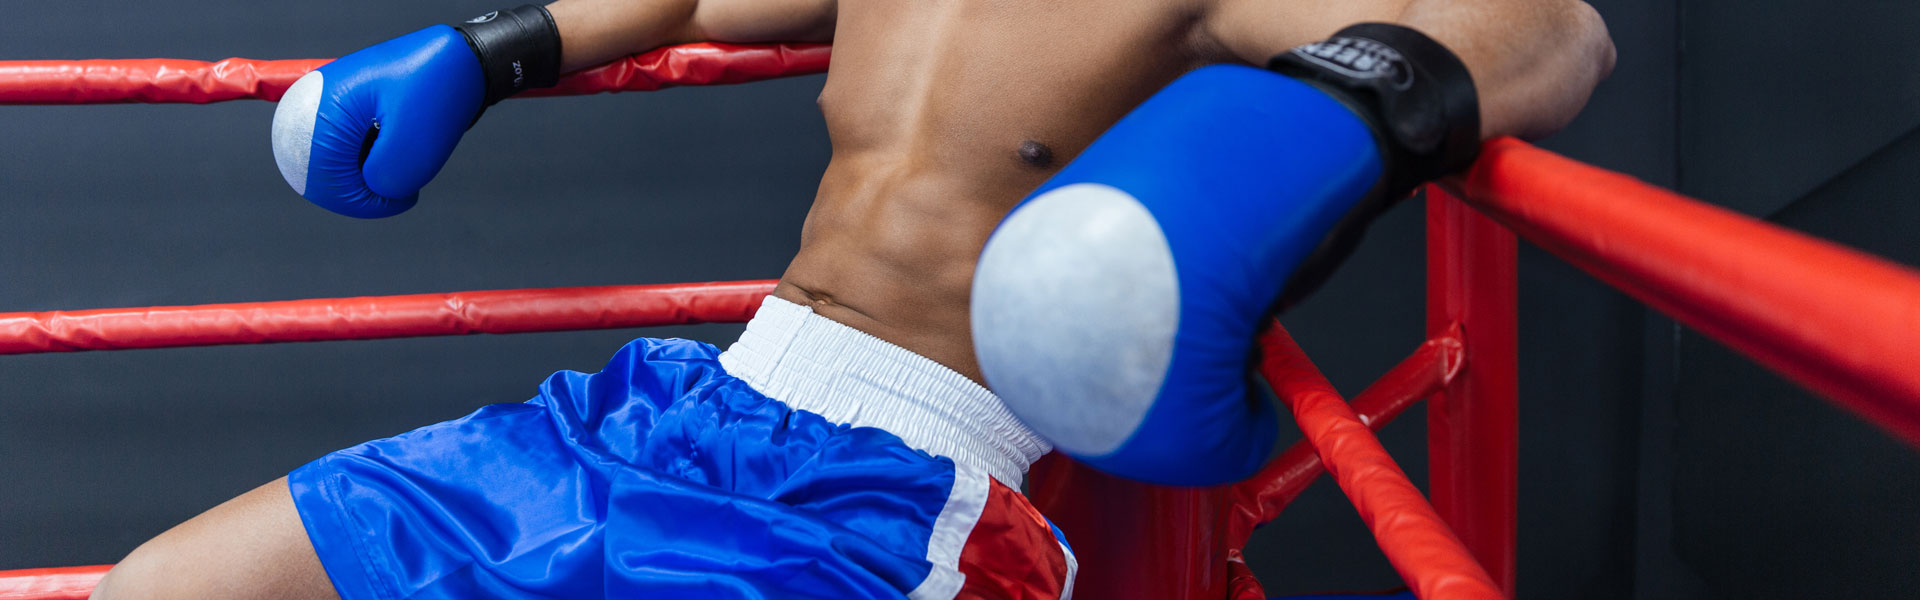 boxing and martial arts promotional products printed